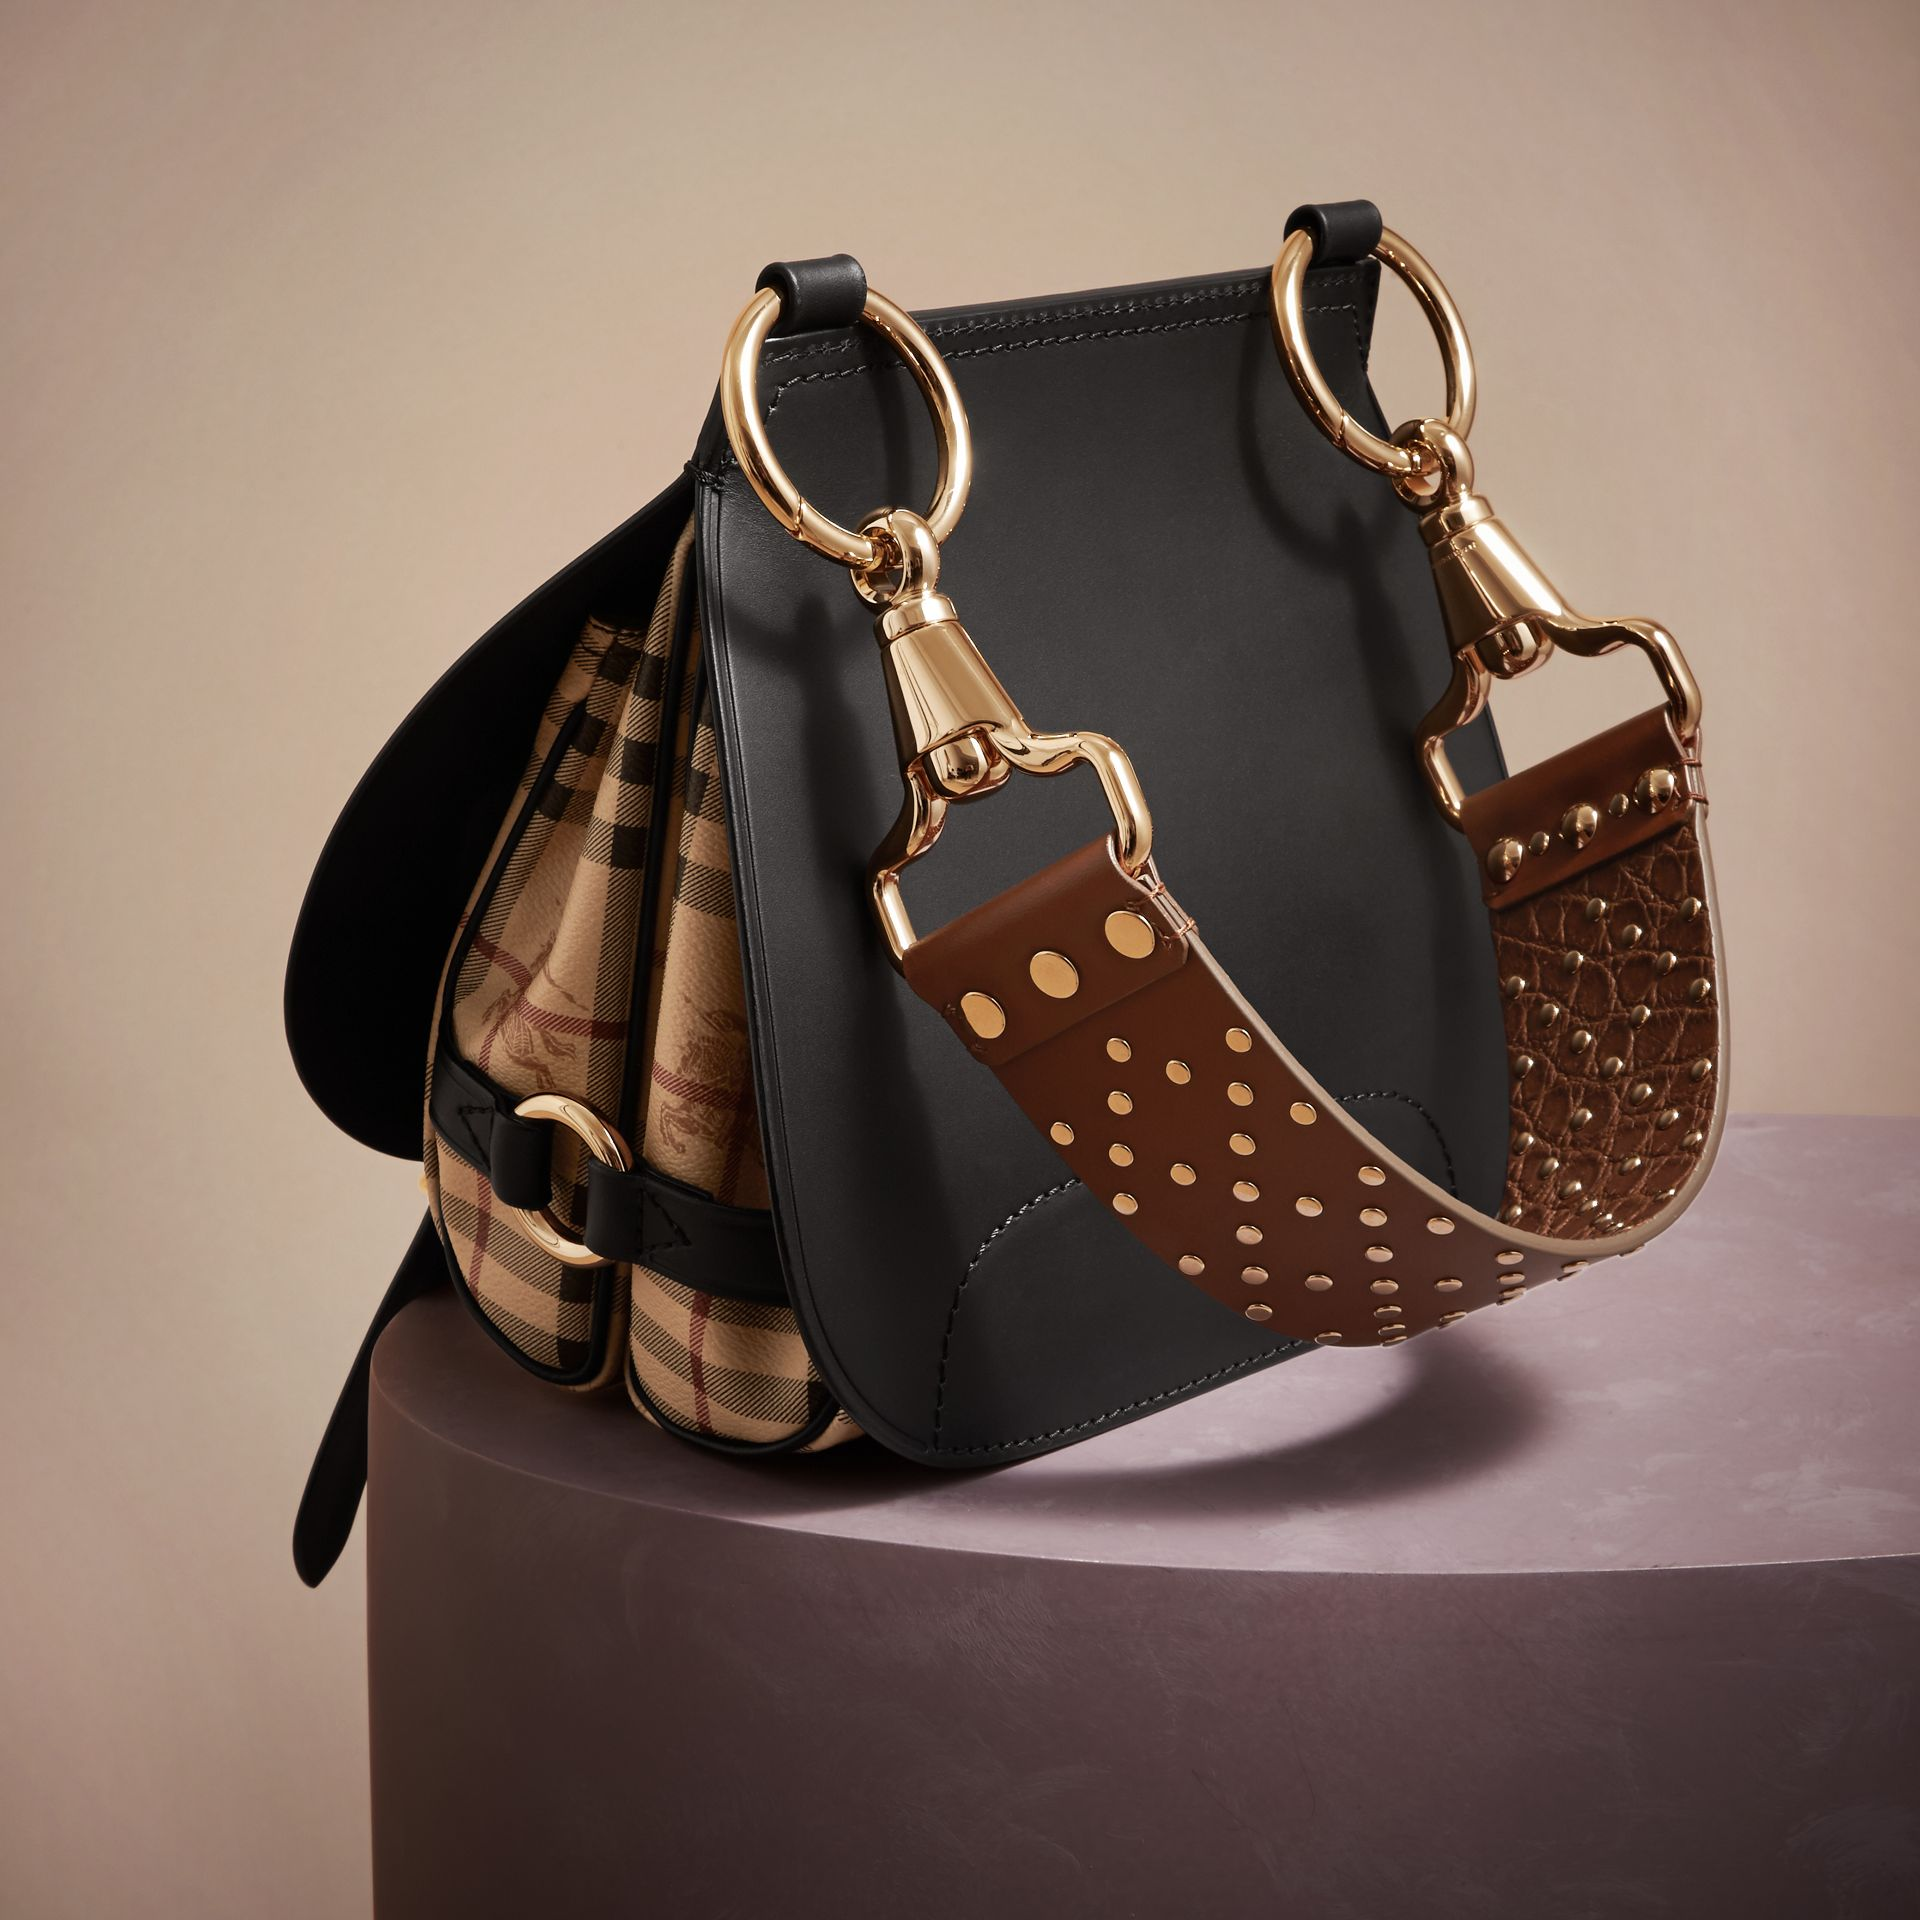 Nero Borsa The Bridle in pelle, motivo Haymarket check e alligatore - immagine della galleria 5